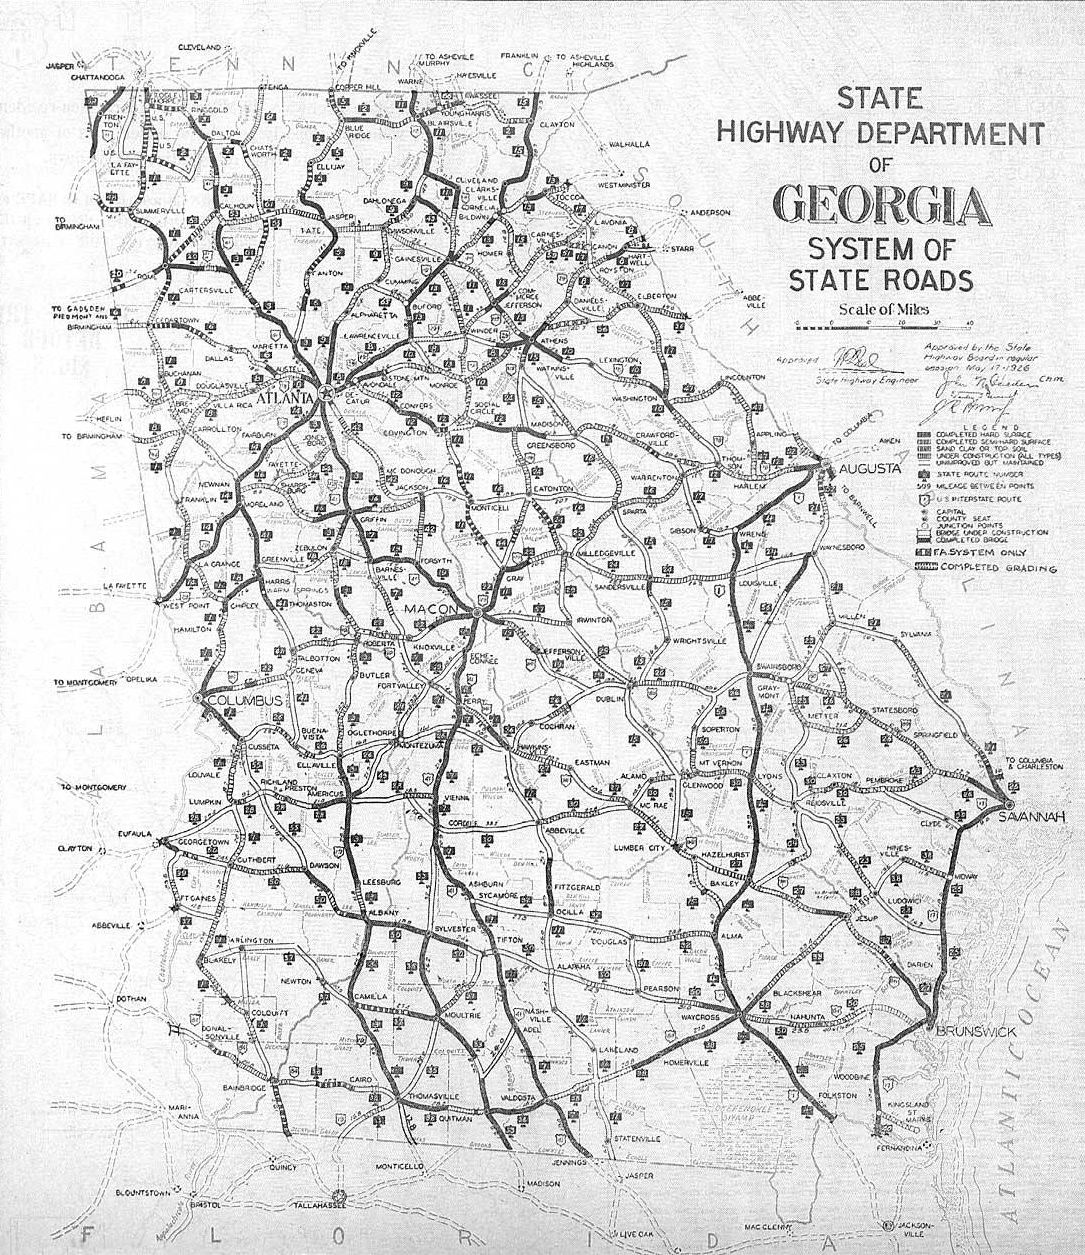 Detailed old road system map of Georgia state – 1929 ... on sugarloaf parkway 316 and map, bullock county ga map, sugarloaf ga map, georgia street map, ga highway map, georgia highway map, atlanta georgia map, ga state map, georgia county map, georgia state outline, the georgia state map, georgia state relief map, georgia state industrial map, georgia interstate map, colorado state map, georgia map cities ga, georgia land use map, georgia state map online, georgia state plane map, georgia road map detailed,